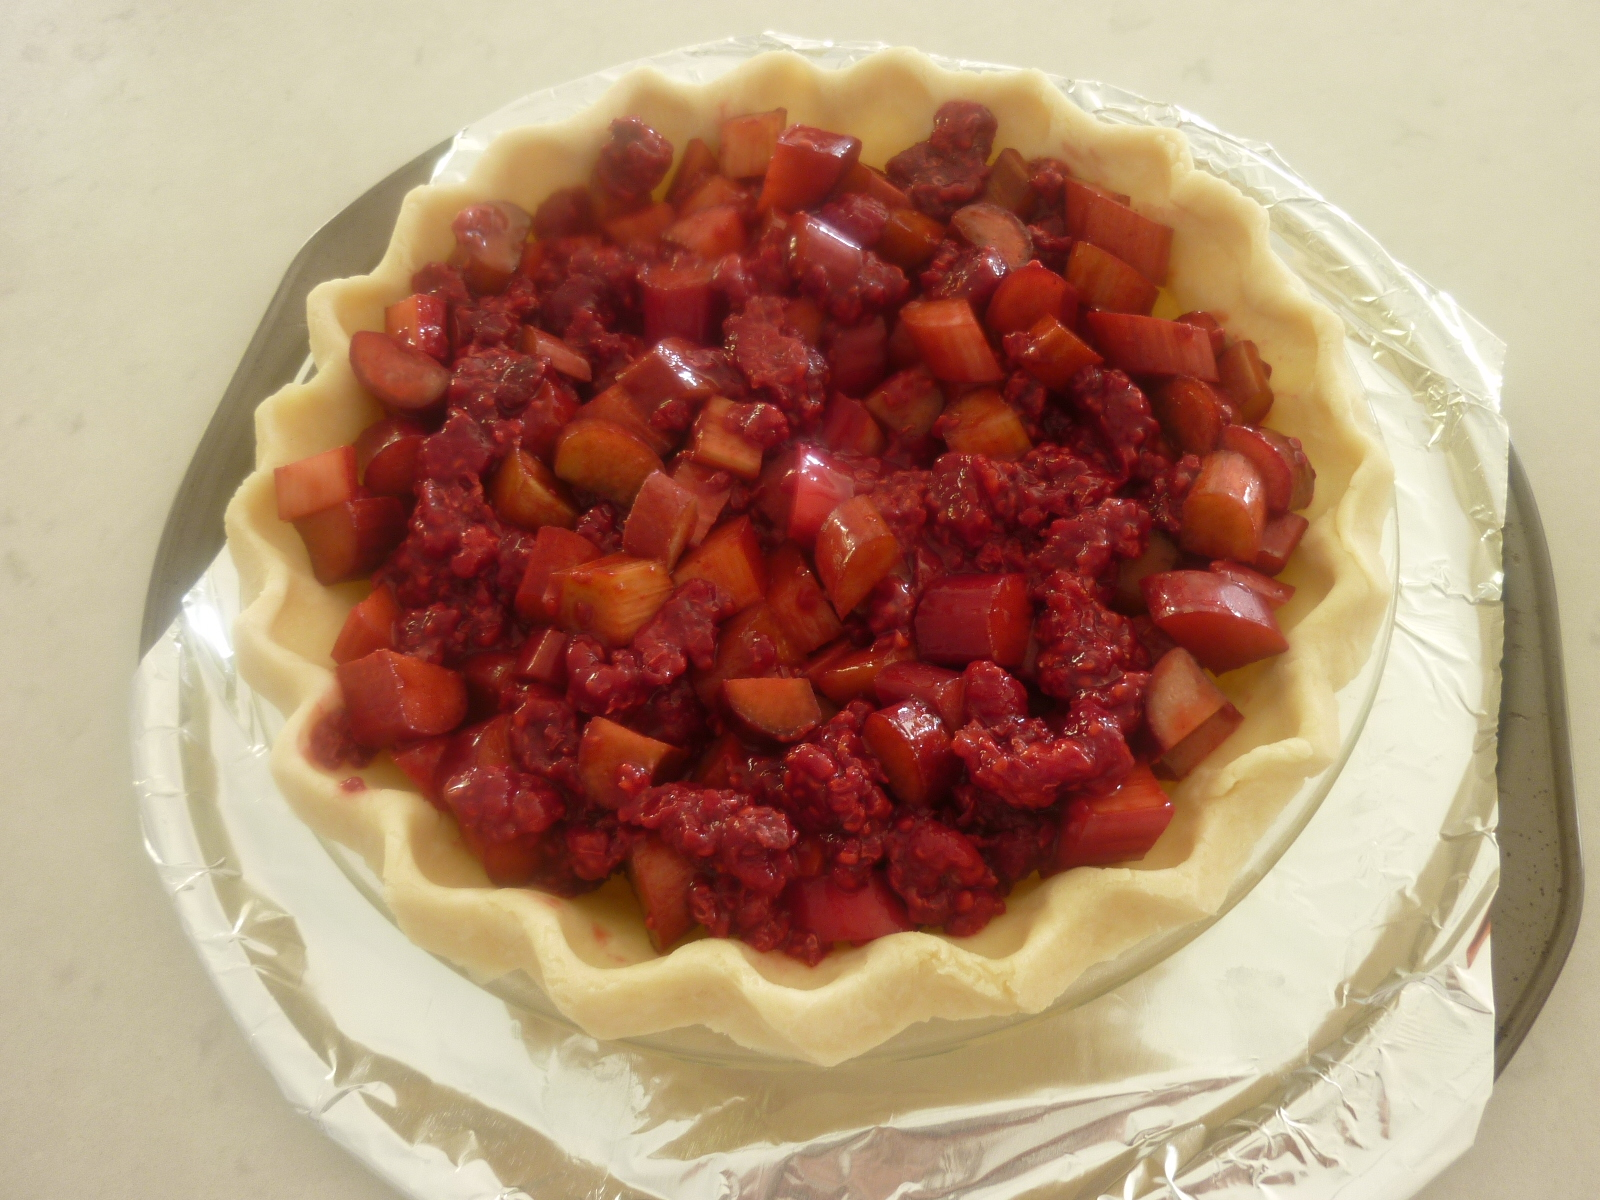 Mix the rhubarb and raspberries and pour into unbaked pie shell.